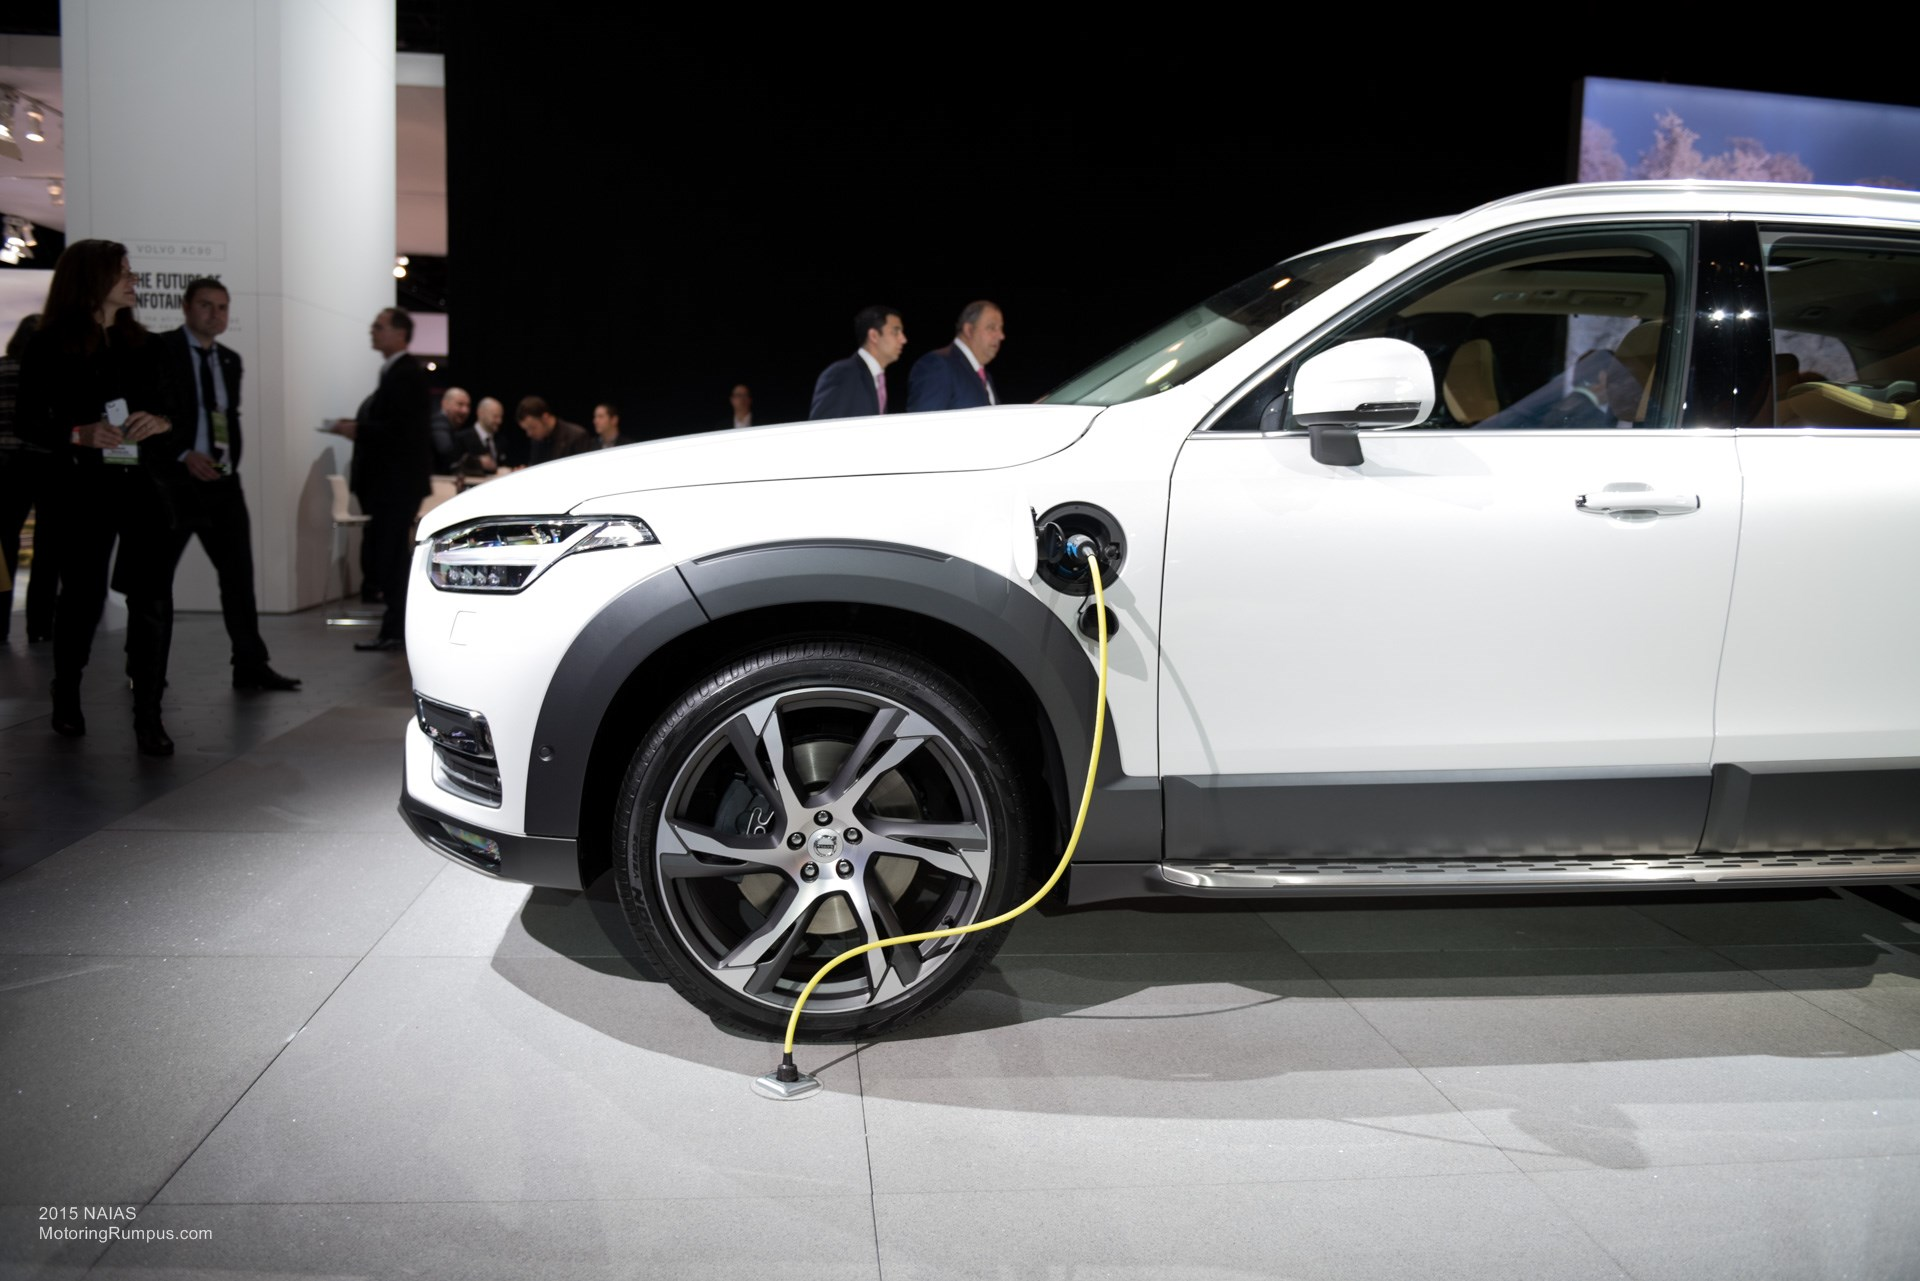 Volvo S90 T8 Twin Engine At The 2016 Naias Photos Videos further 2017 Volvo Xc90 T8 Plug In Hybrid First Test Review likewise Volvo S90 T8 Review likewise 1 Kw Electric Motor likewise Volvo S90 Premiumsedan. on volvo s90 t8 twin engine at the 2016 naias photos videos